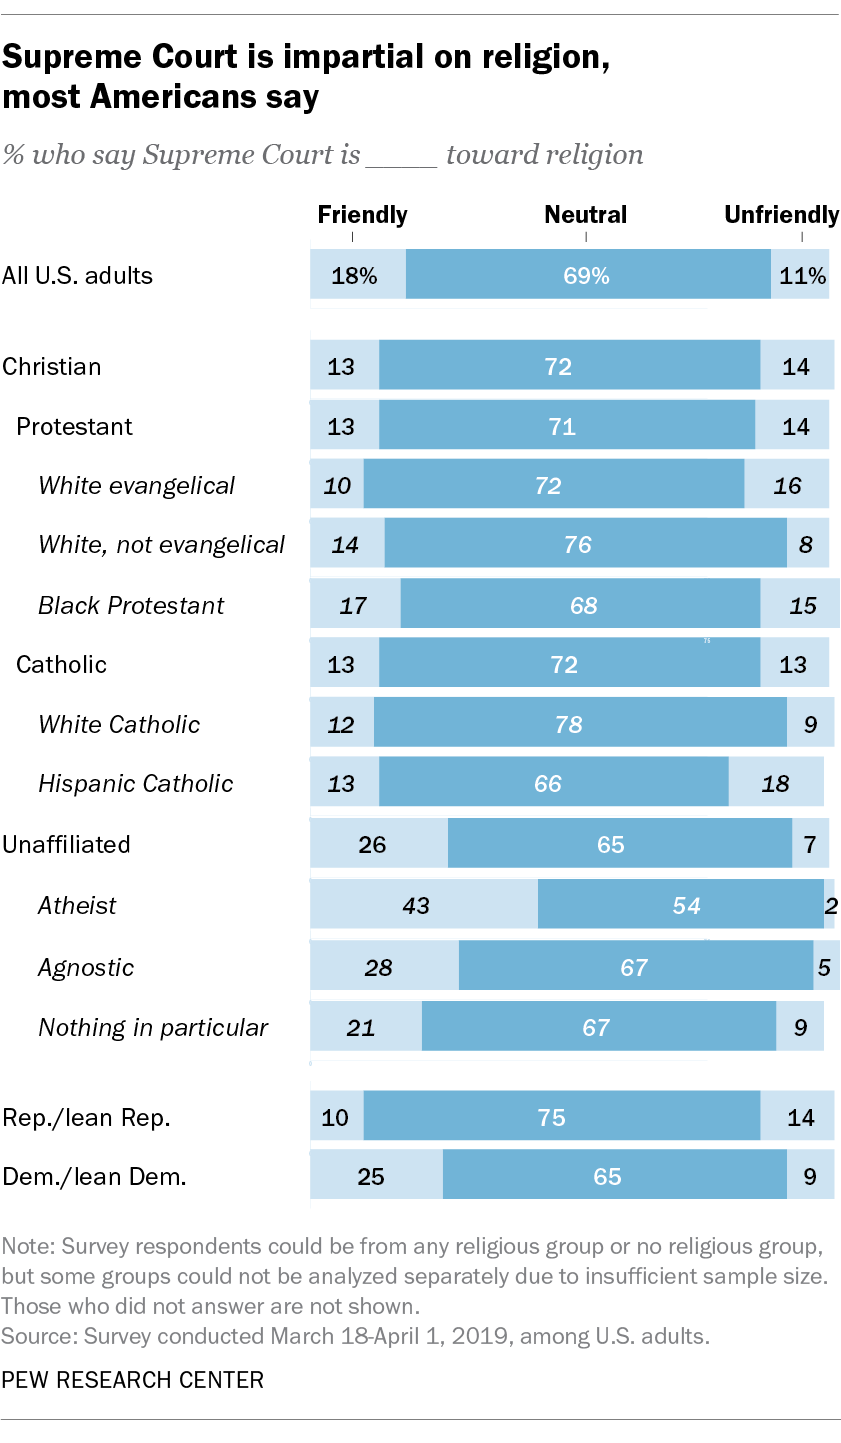 Supreme Court is impartial on religion, most Americans say